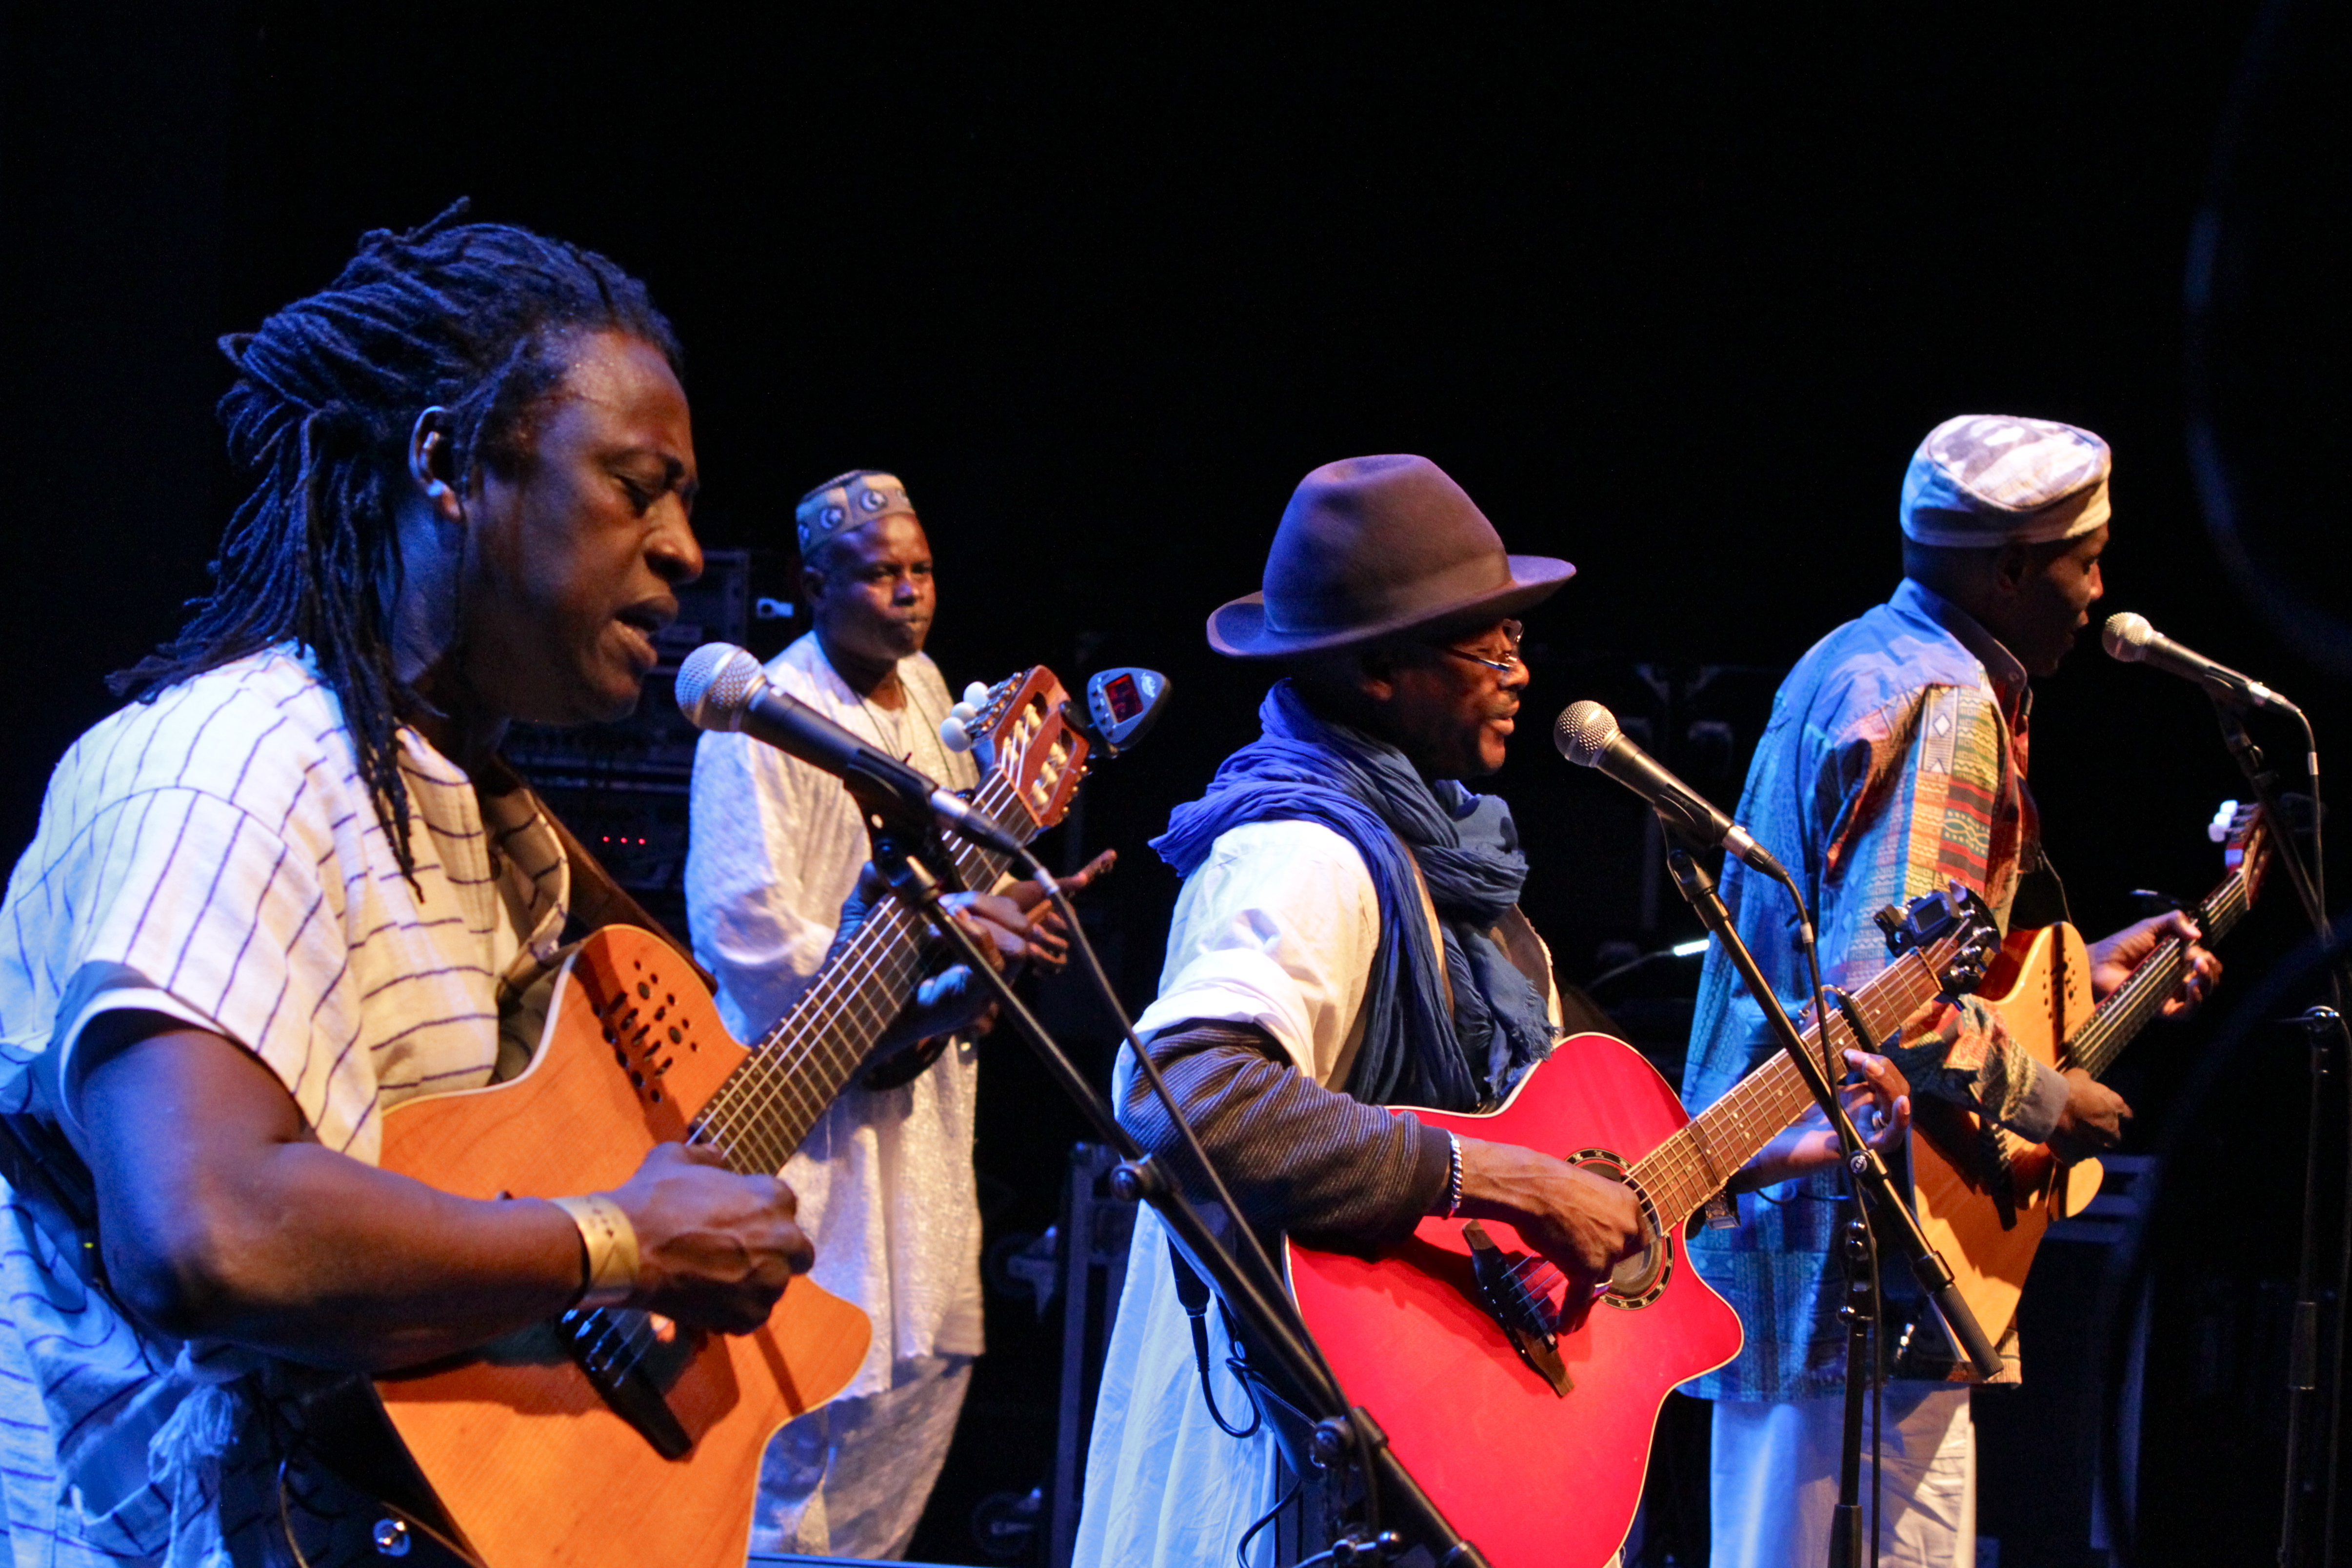 Preview: Acoustic Africa featuring Habib Koite, Oliver Mtukudzi and